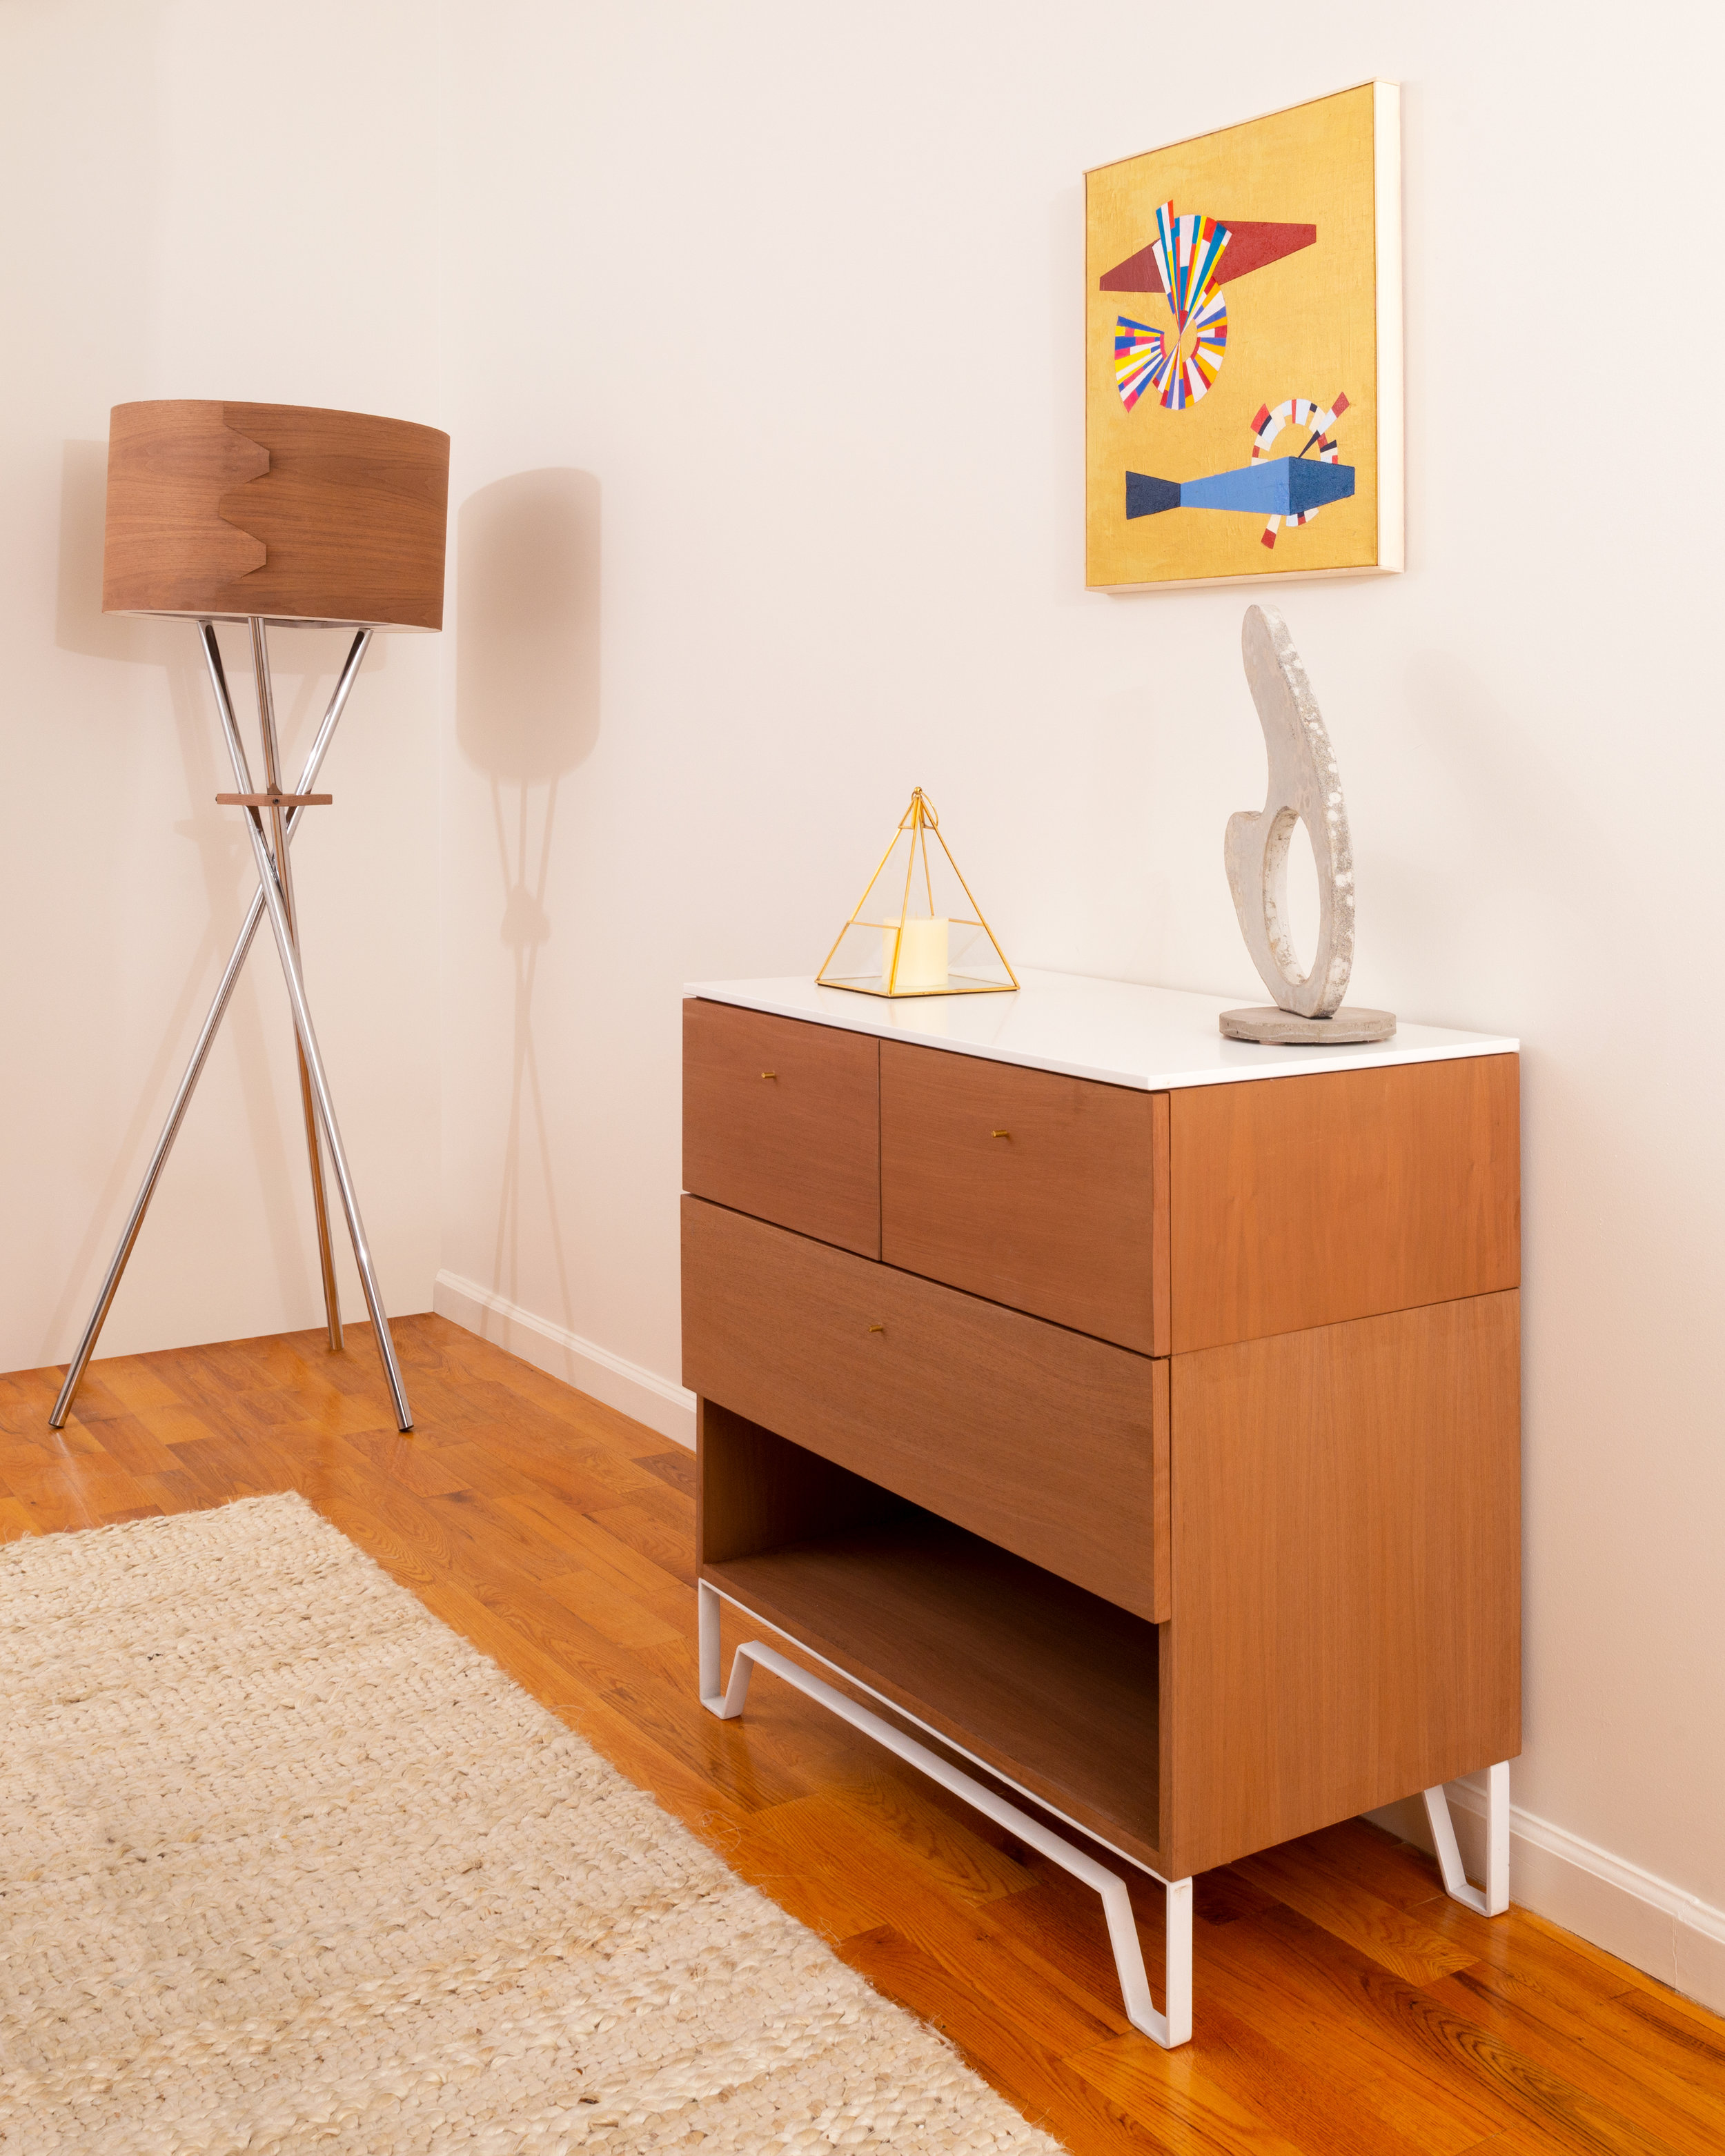 Nuovo-Collection-Floor-Lamp-and-Double-Geode-with-drawer